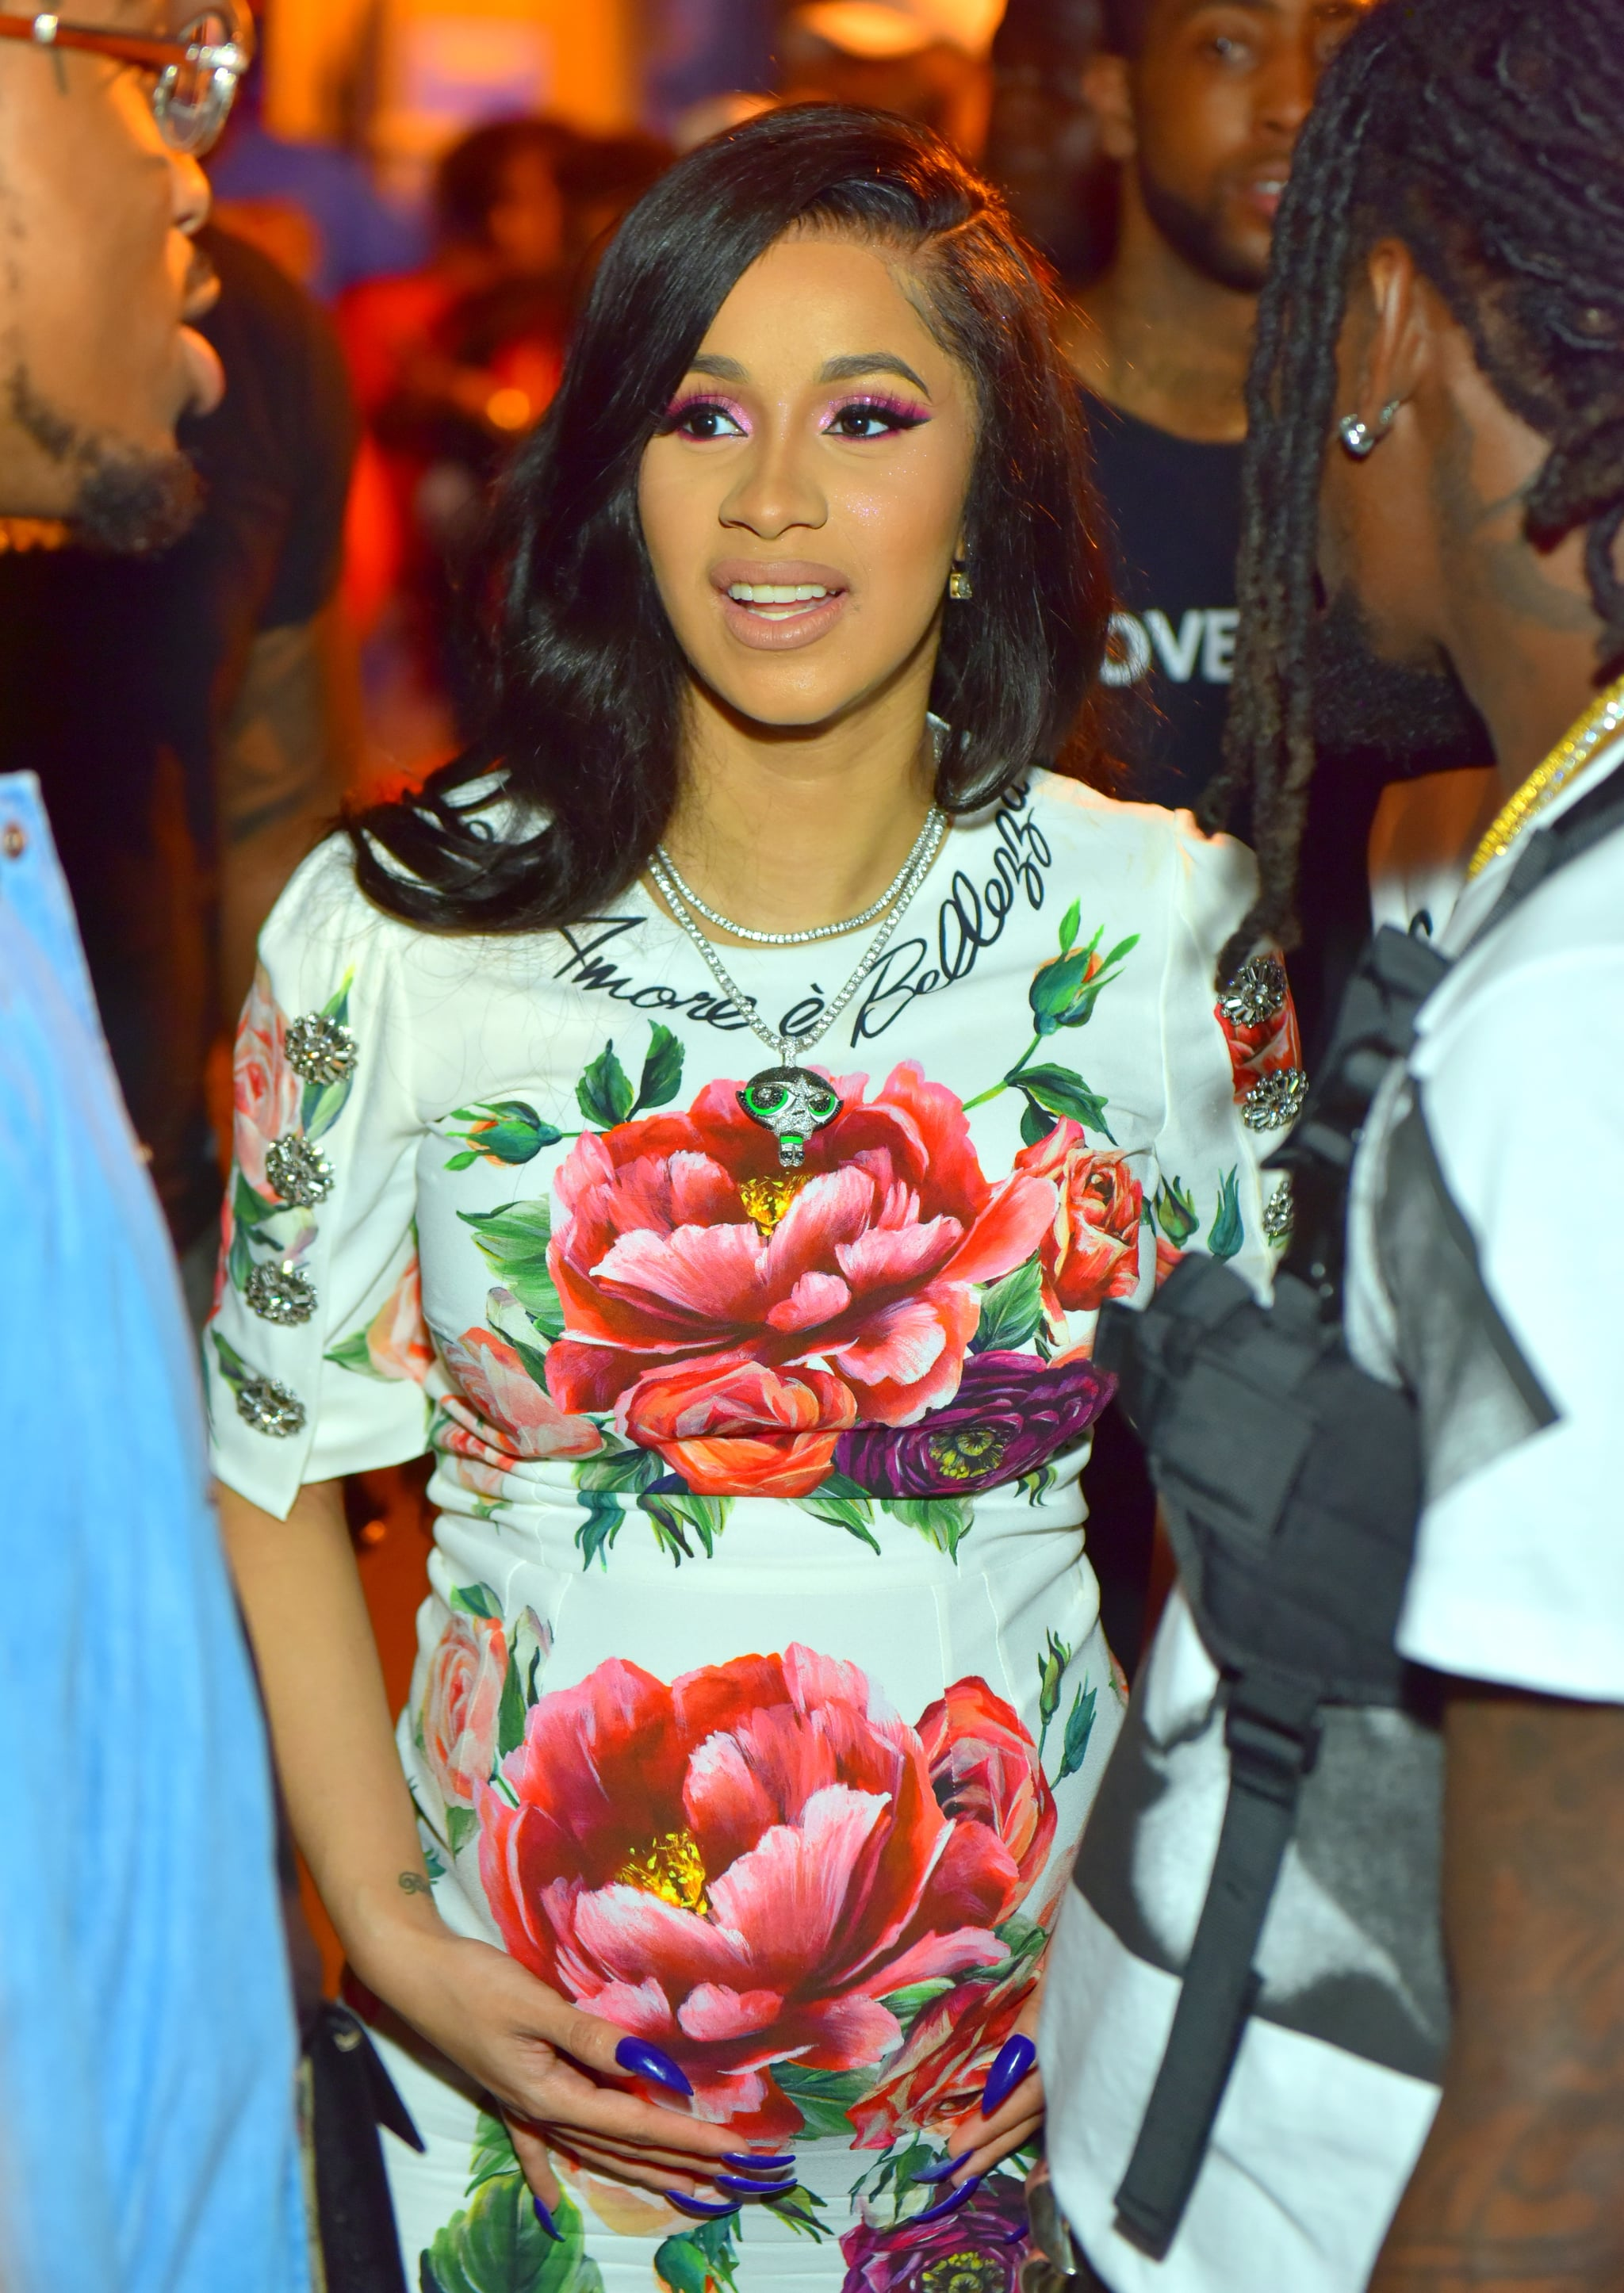 ATLANTA, GA - JUNE 16: Cardi B attends Birthday Bash 2018 at Cellairis Amphitheatre at Lakewood on June 16, 2018 in Atlanta, Georgia.(photo by Prince Williams/Wireimage)